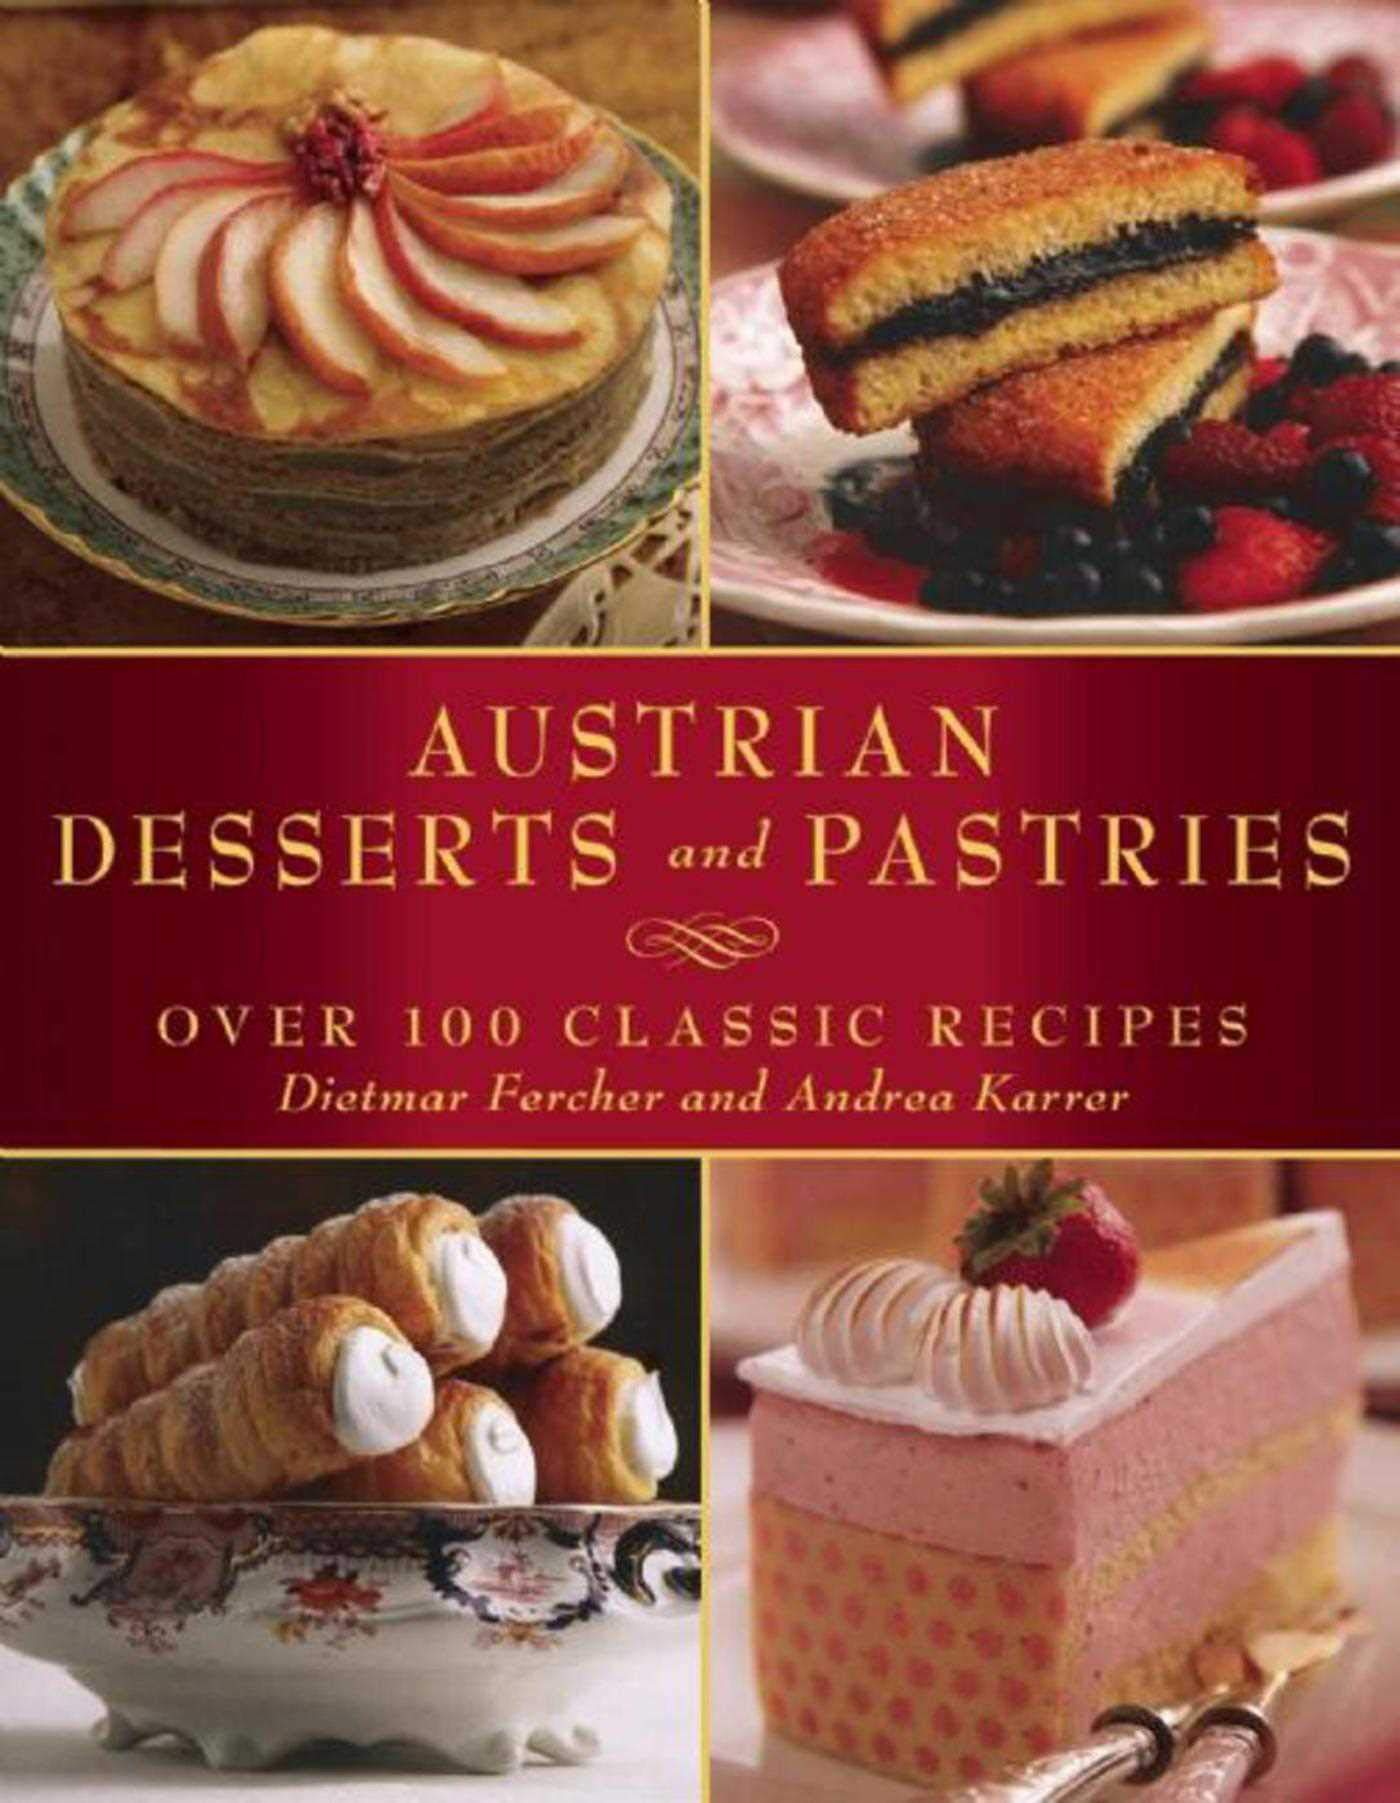 Image OfAustrian Desserts And Pastries: Over 100 Classic Recipes